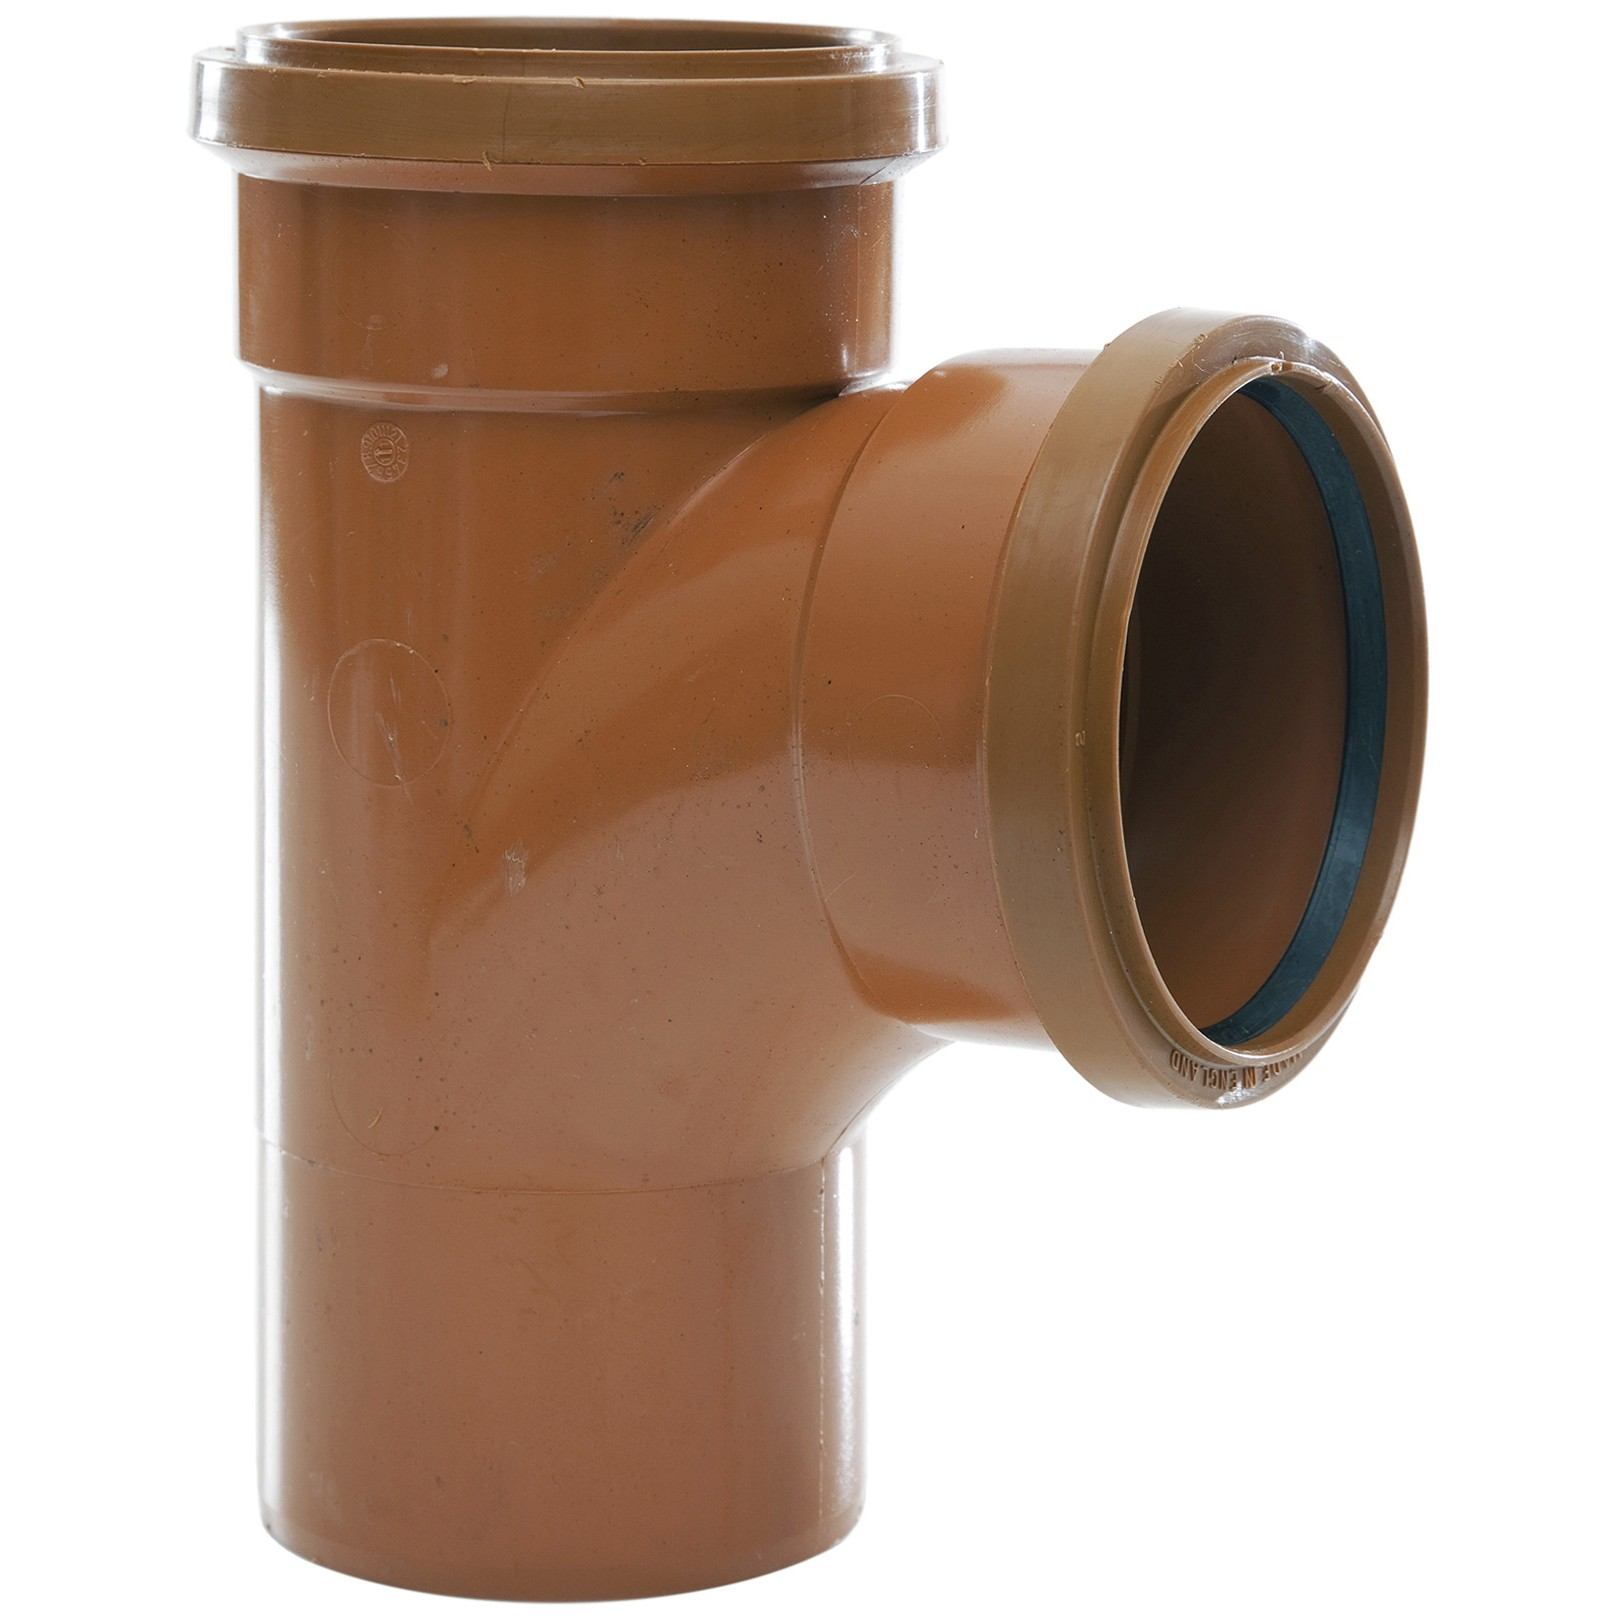 Polypipe 110mm Underground 87.5 Double Socket Equal Junction - Terracotta